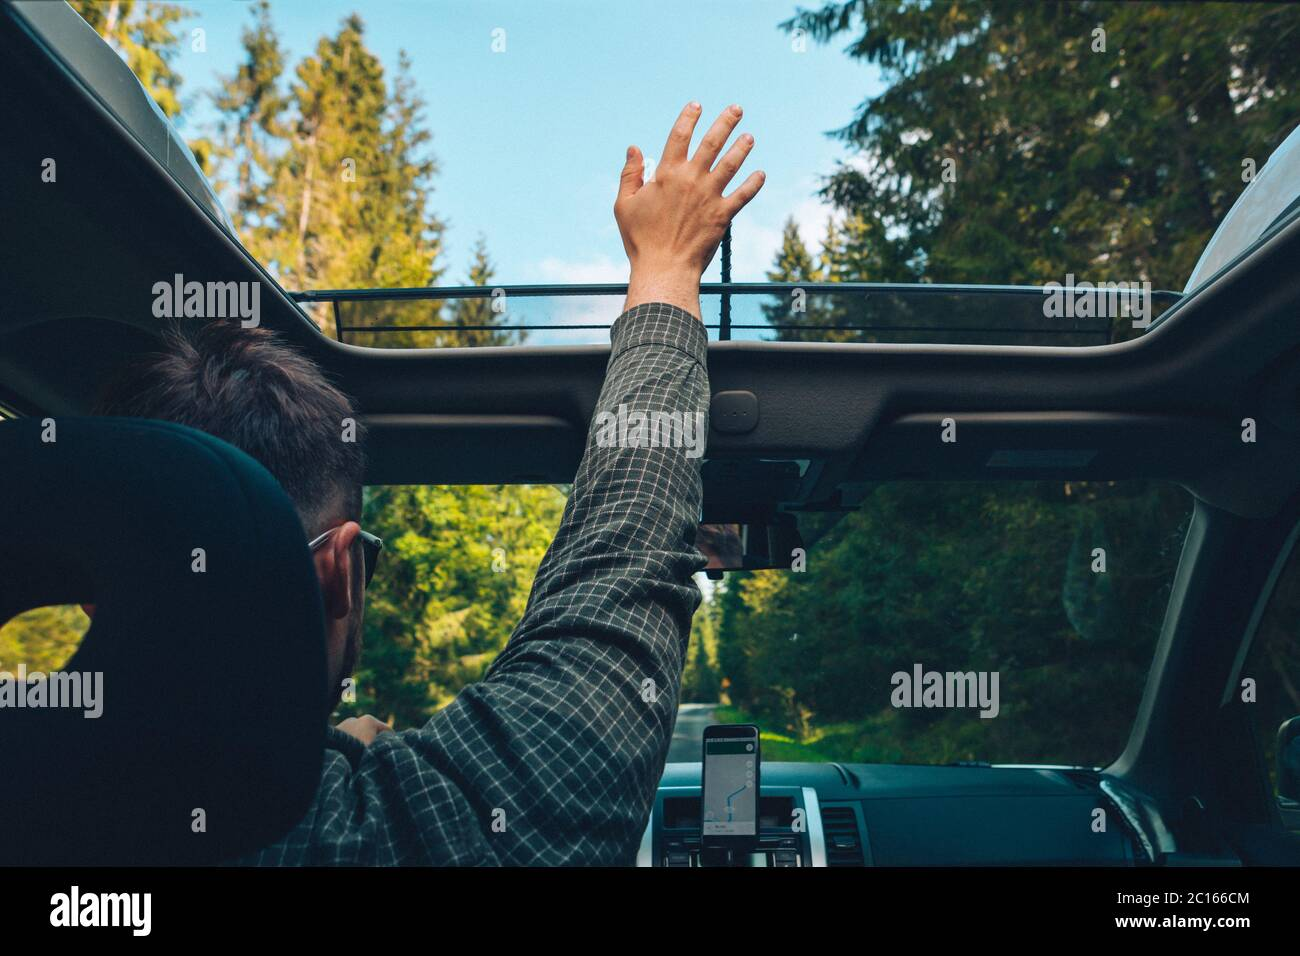 Car Sunroof High Resolution Stock Photography And Images Alamy